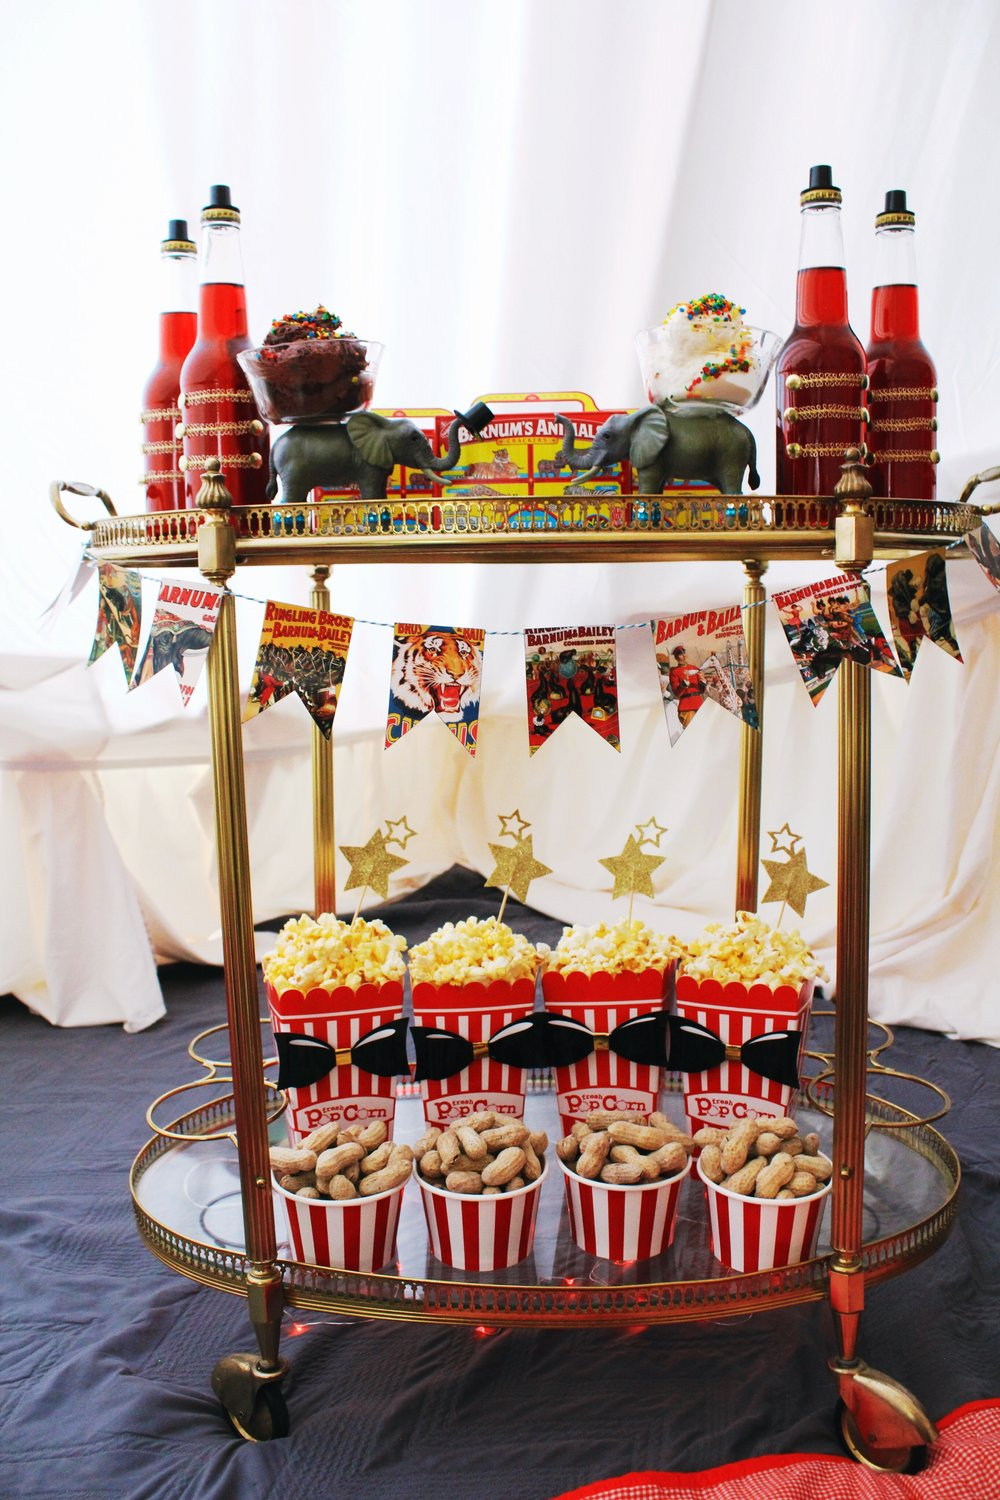 The Greatest Showman Movie Party_Bar Cart_Food Ideas_Circus Tent.JPG